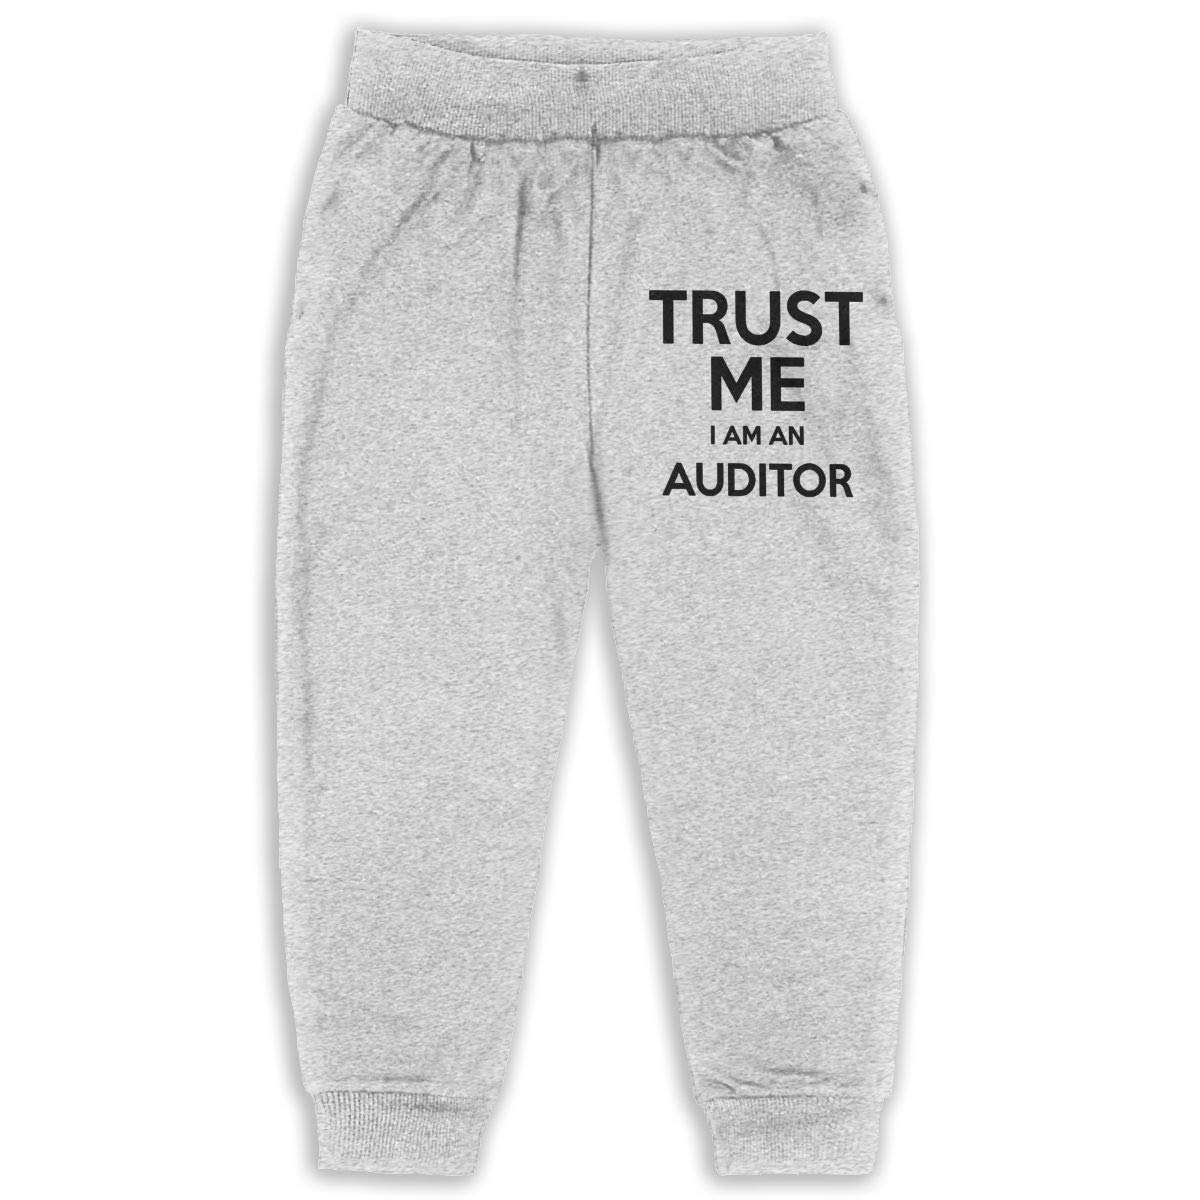 Fleece Active Joggers Elastic Pants Trust Me I Am an Auditor Sweatpants for Boys /& Girls